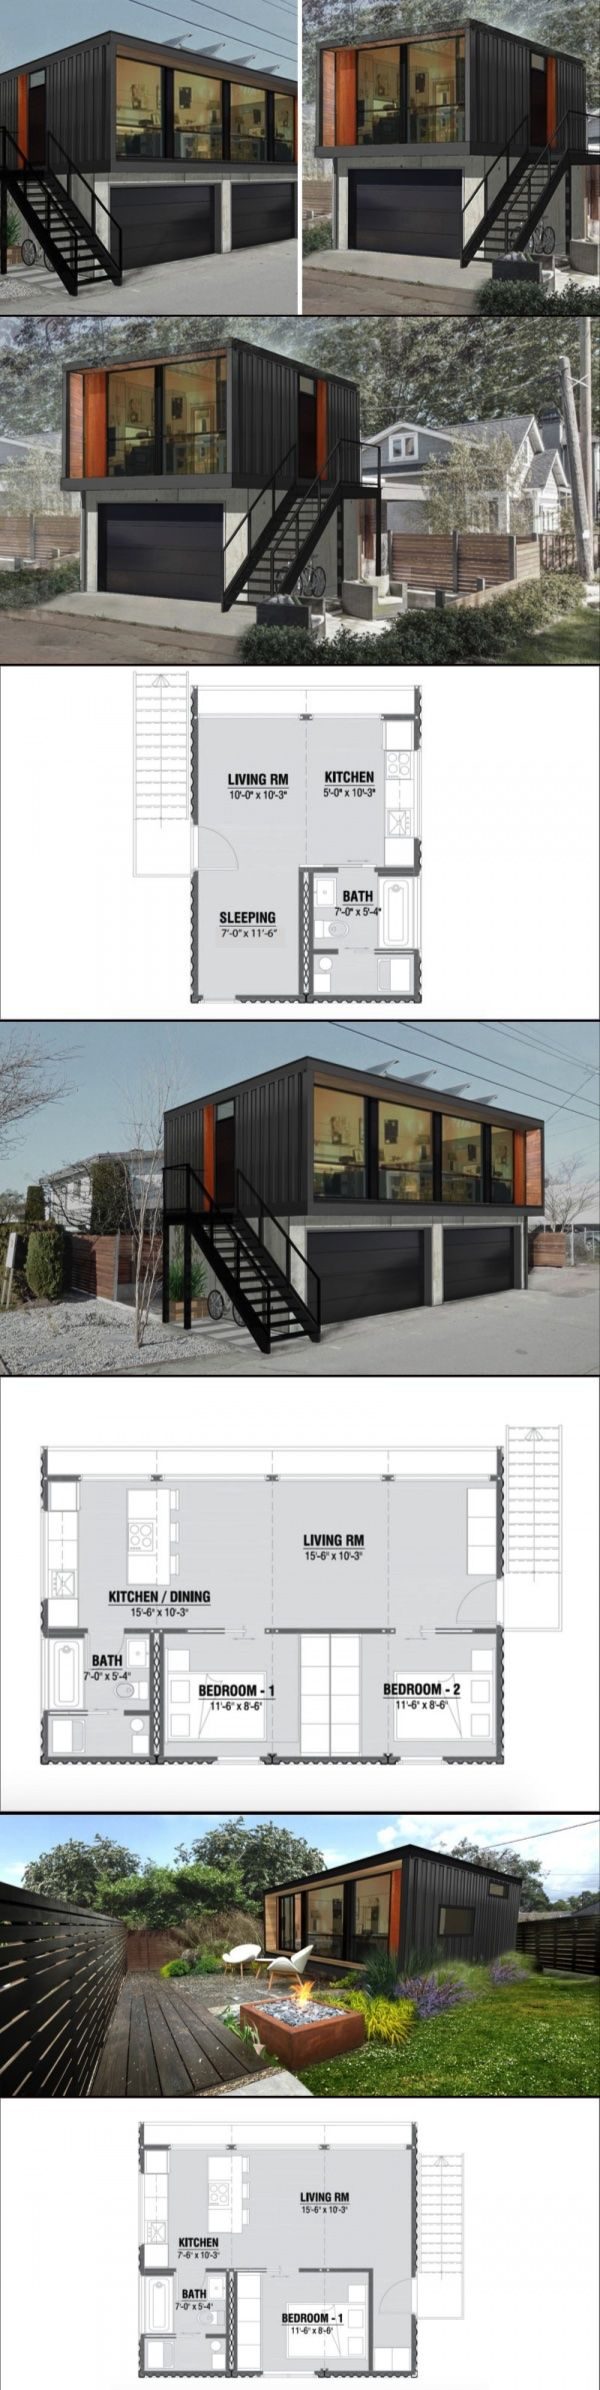 Best Kitchen Gallery: Shipping Container Home Plans Easy Ships And House of Easy Build Shipping Container Homes on rachelxblog.com